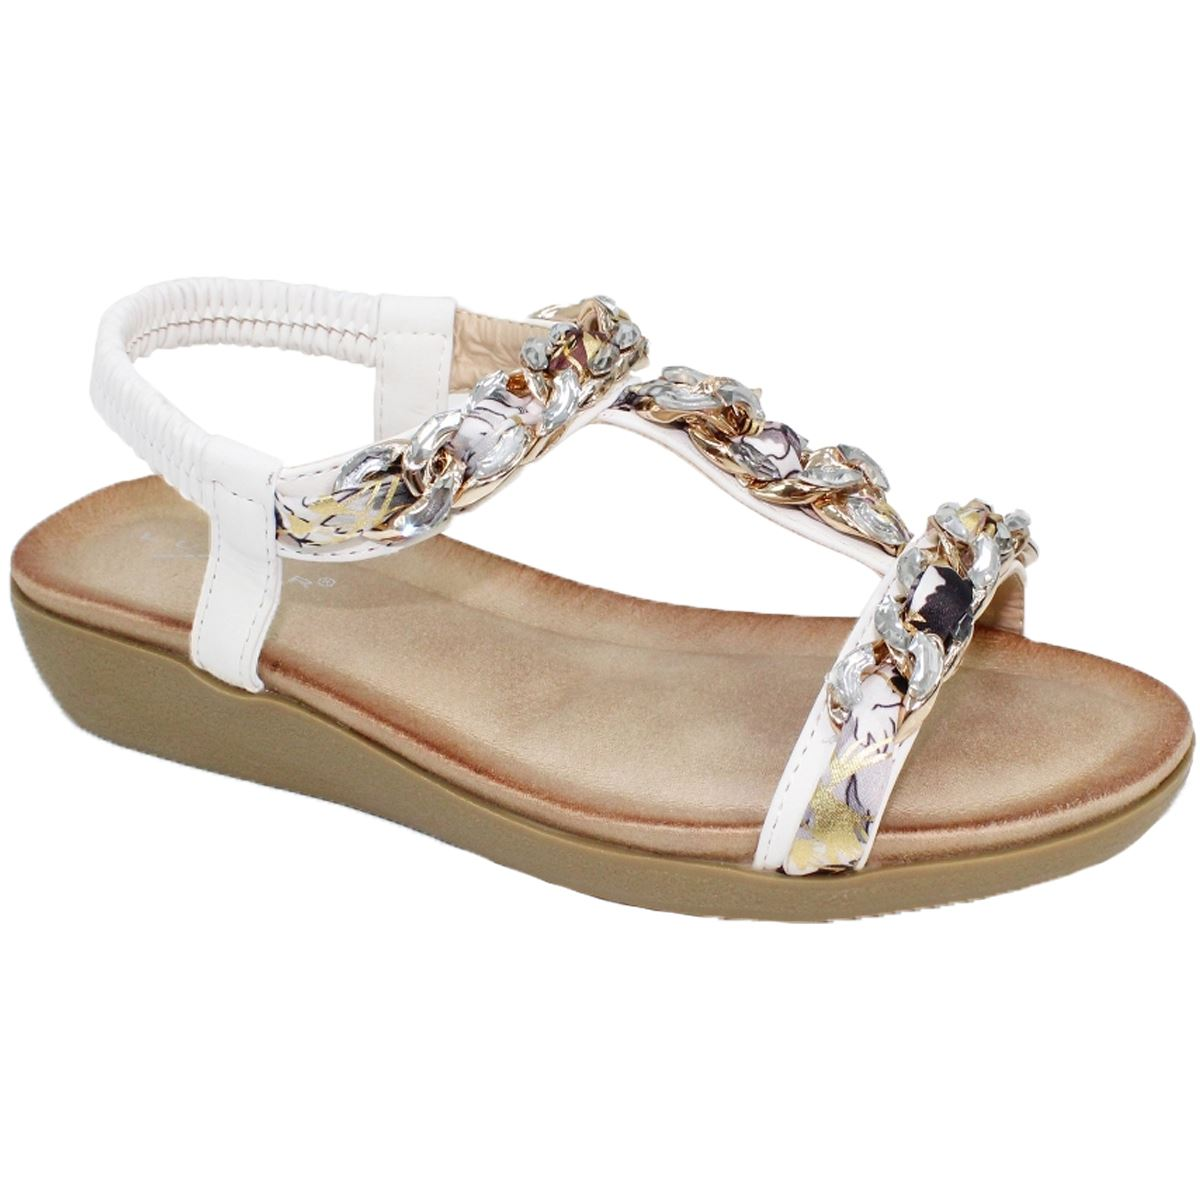 Details about Lunar Cedar Faux Leather Elasticated Ankle Strap Padded 'T' Bar Chain Sandals